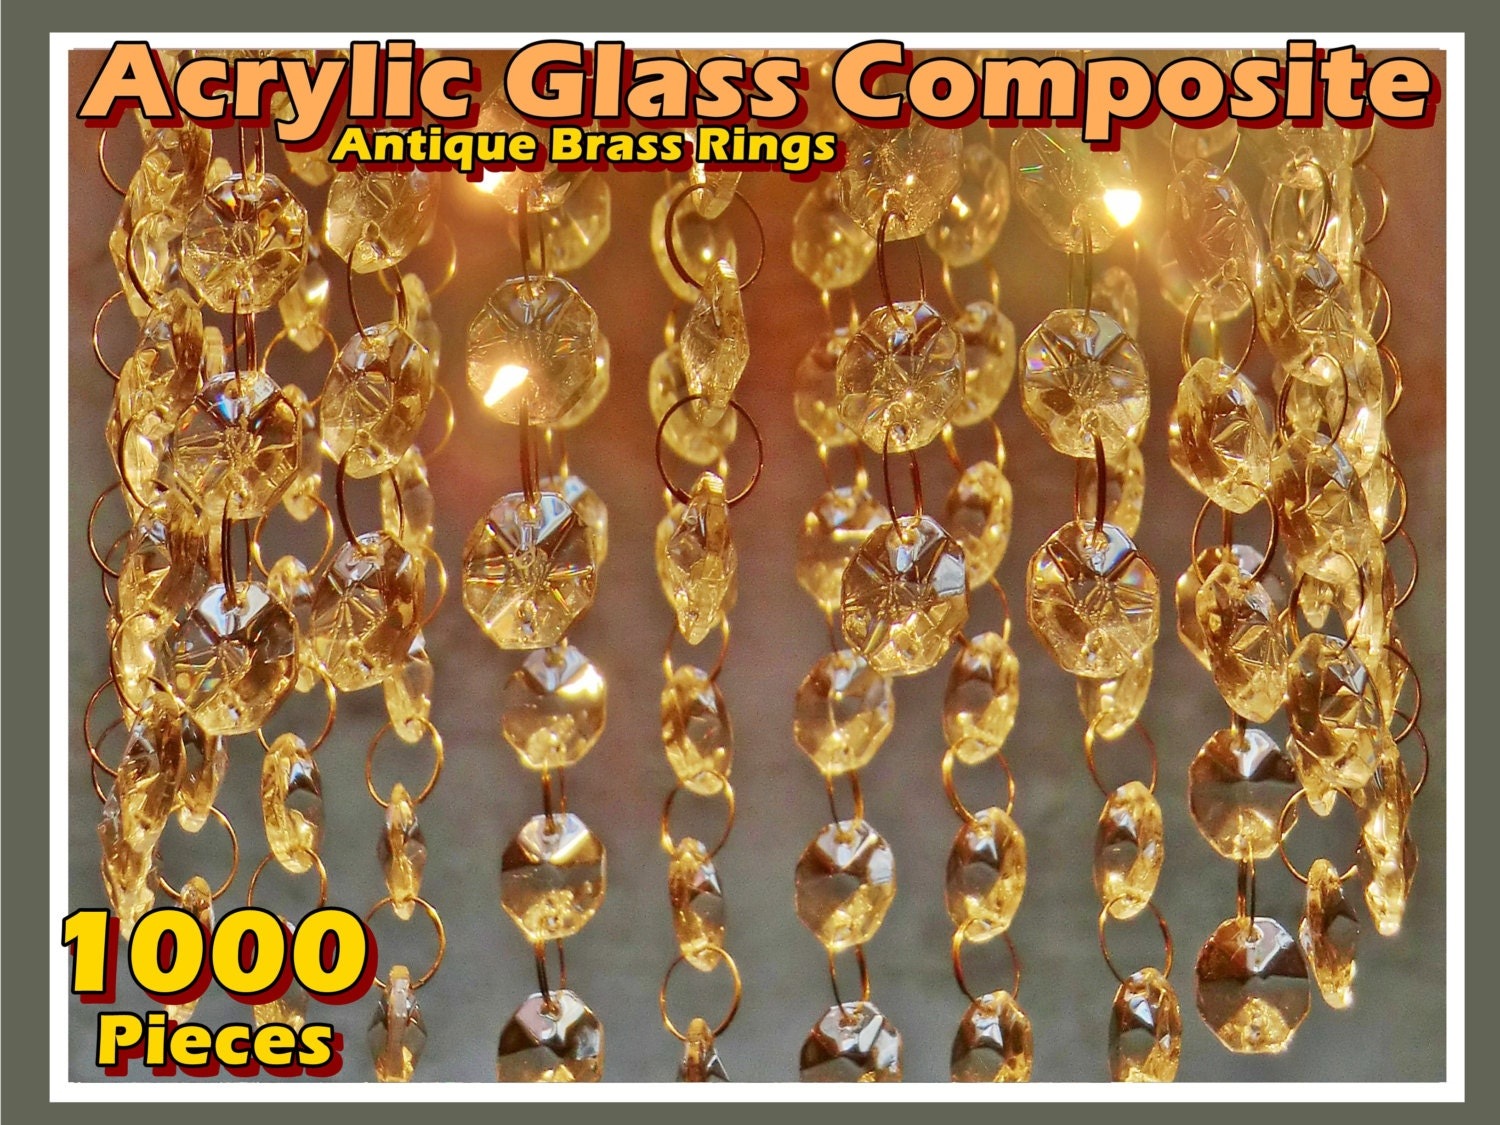 1000 chandelier drops light parts acrylic glass mix antique rings 1000 chandelier drops light parts acrylic glass mix antique rings crystals droplets christmas tree wedding deco beads 20 yard crafts garland mozeypictures Image collections